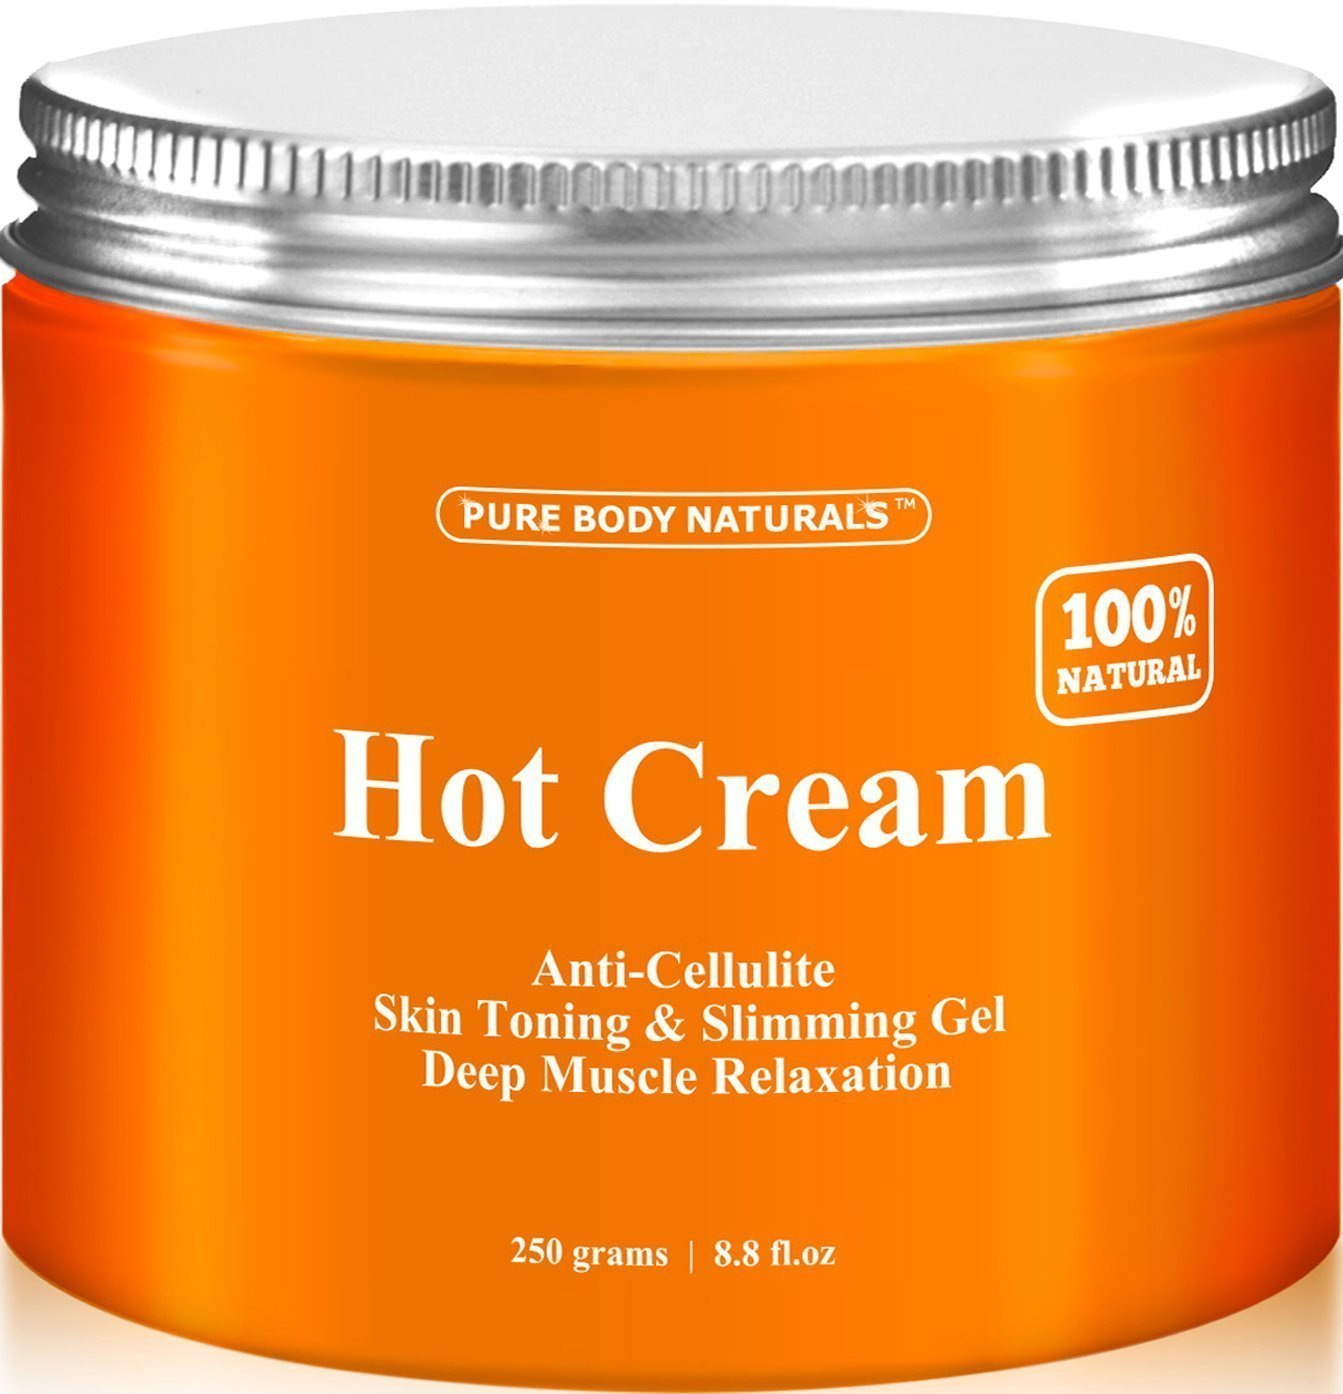 Pure Body Naturals Hot Cream, for Cellulite and Muscle Relaxation, 8.8 Ounce by Pure Body Naturals